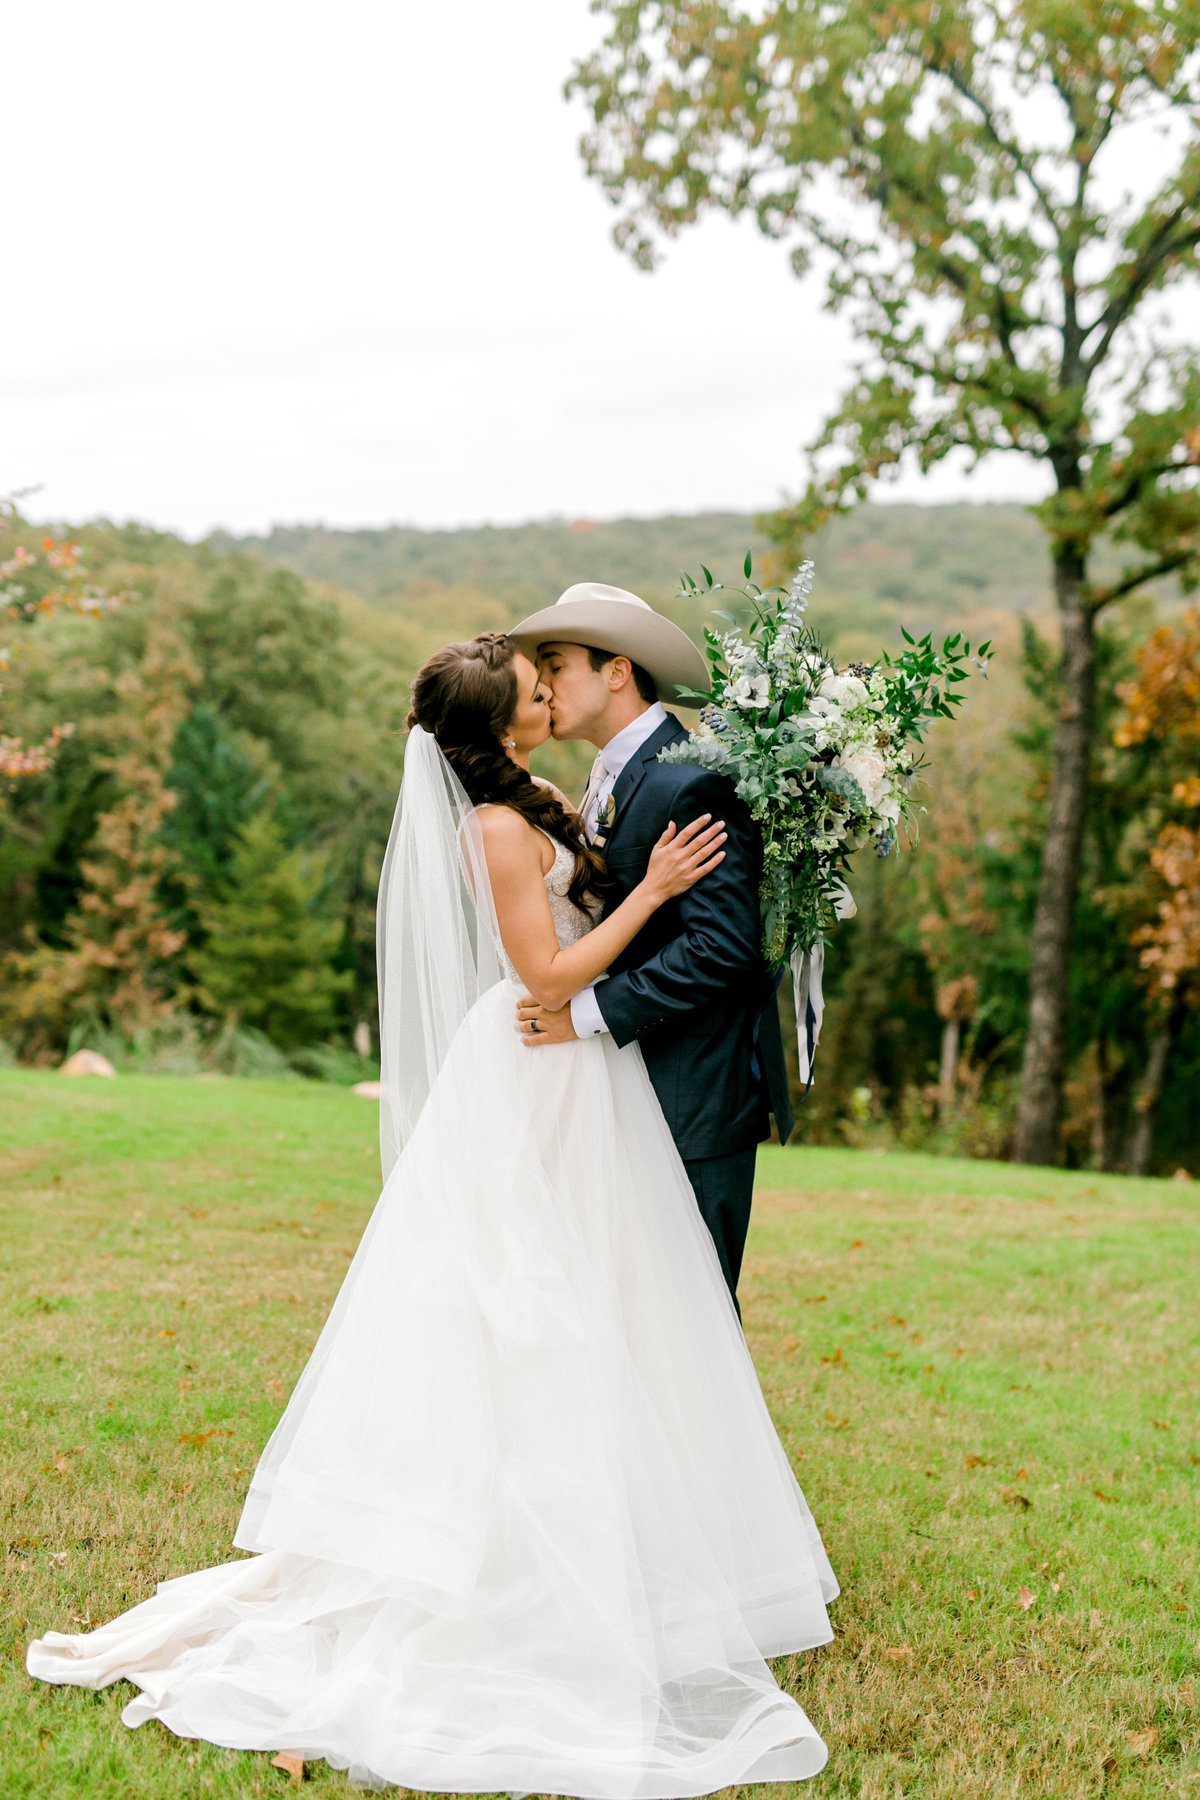 Hailey-and-Christian-Wedding-Day-by-Emily-Nicole-Photo-298